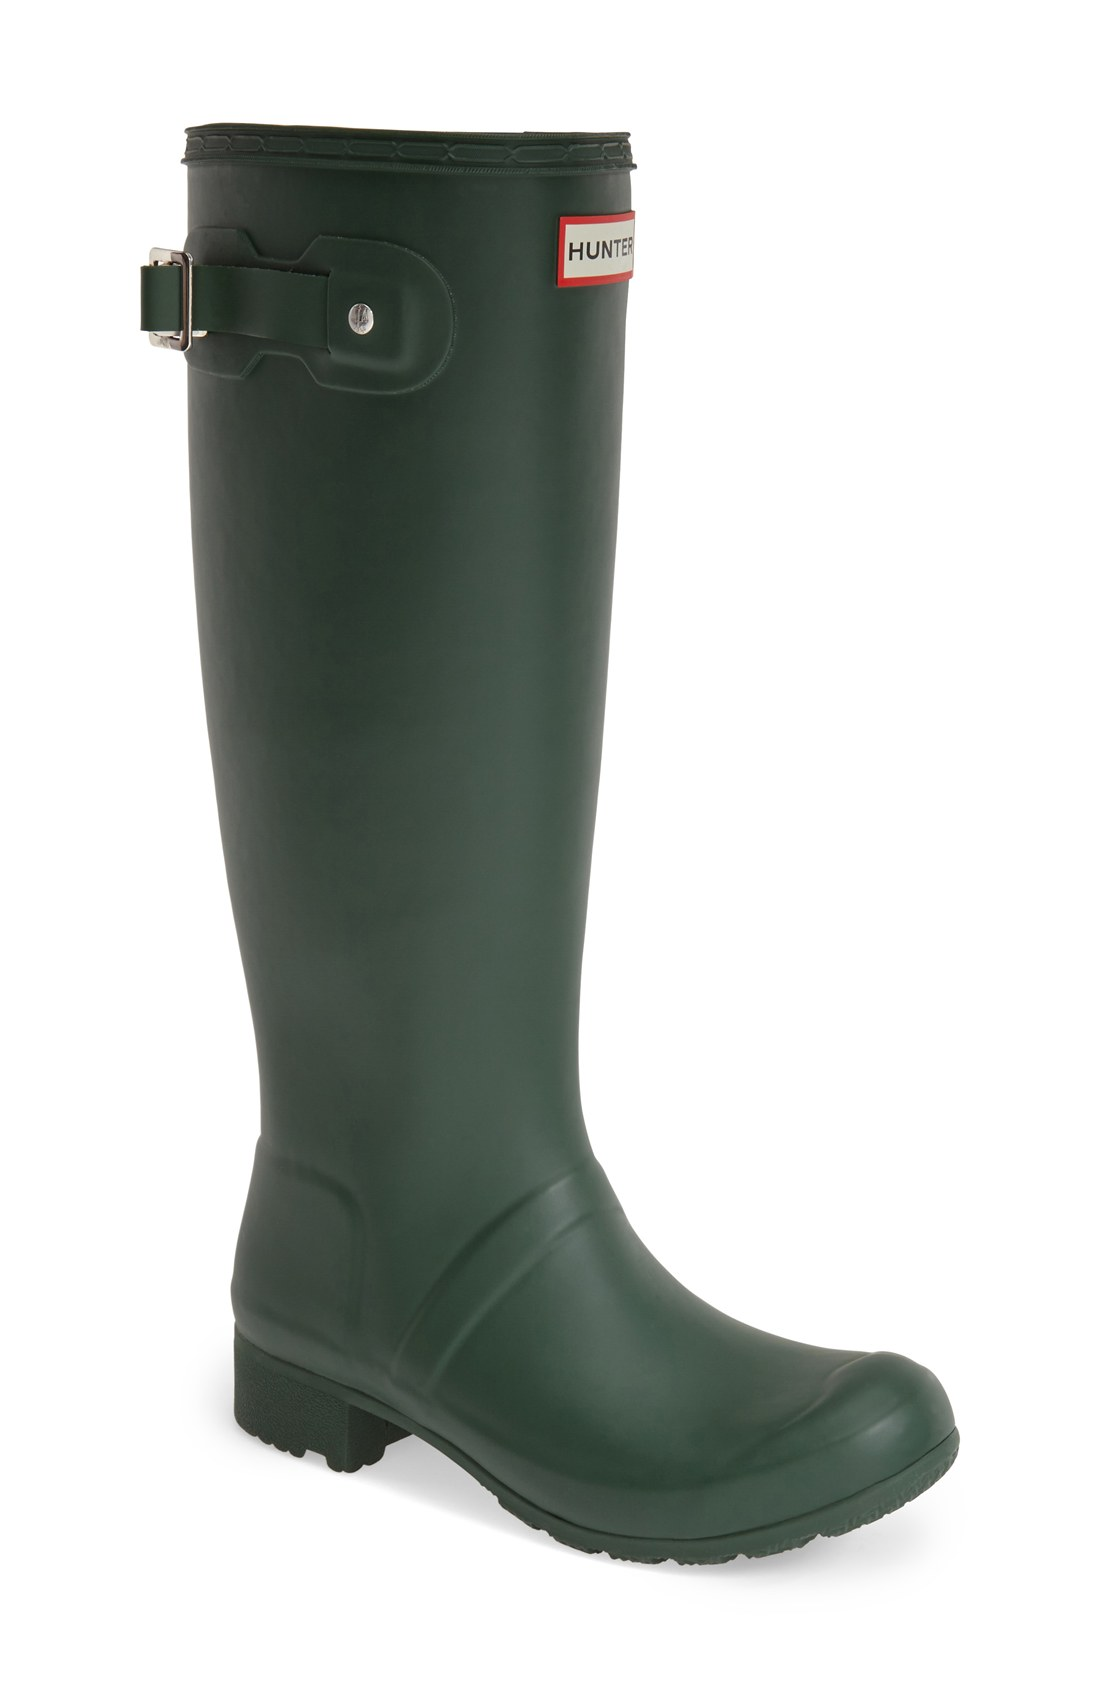 Black Rain Boots For Women OVqWDJIT